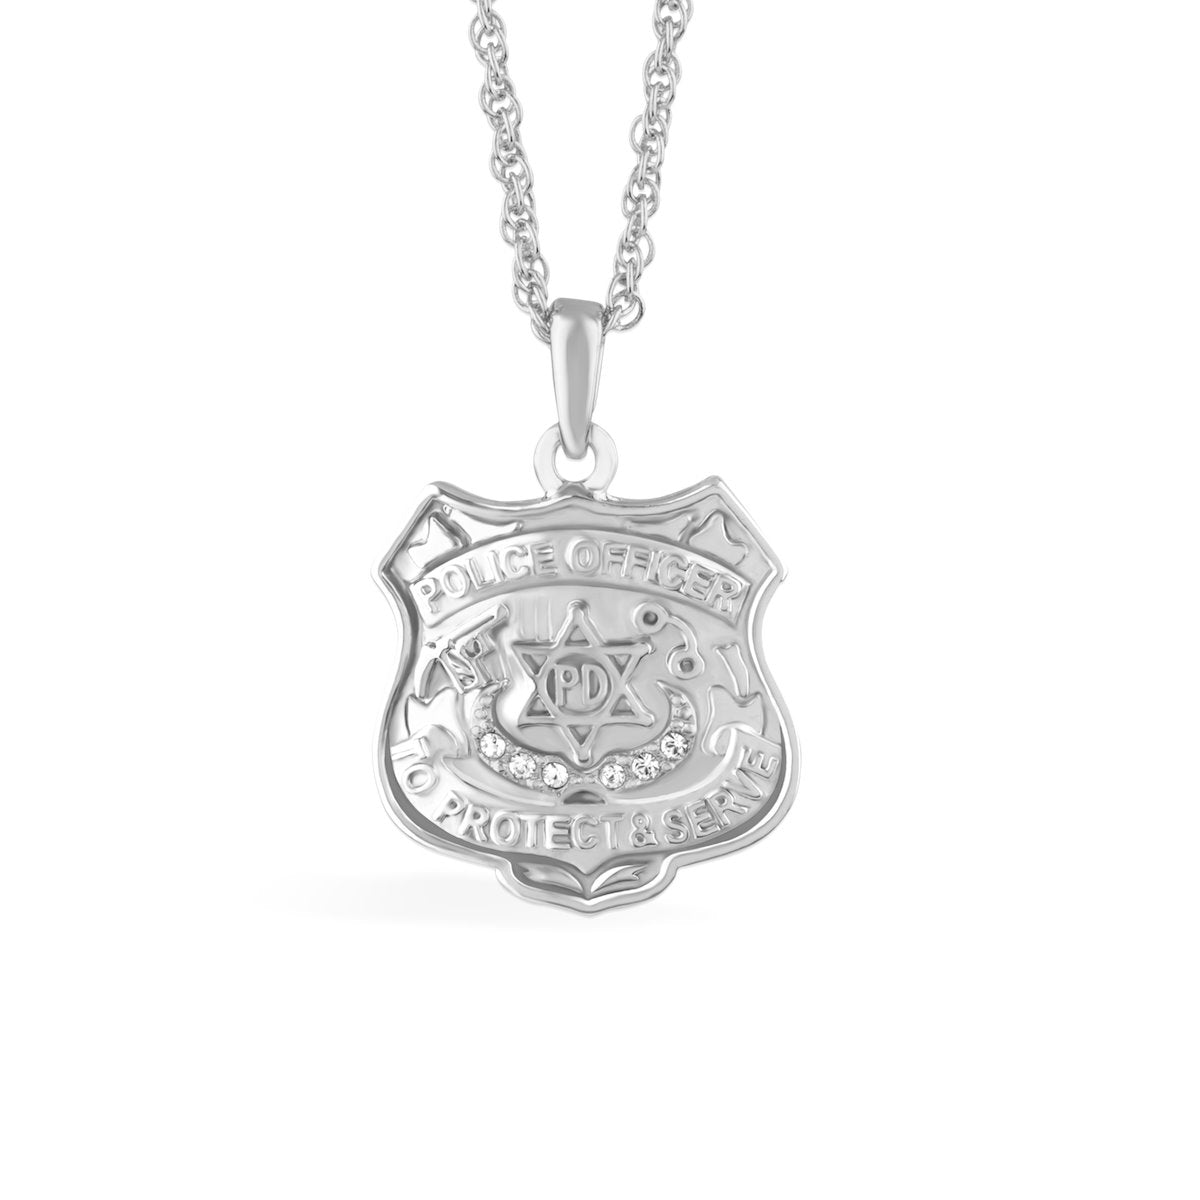 Police Officer Pendant